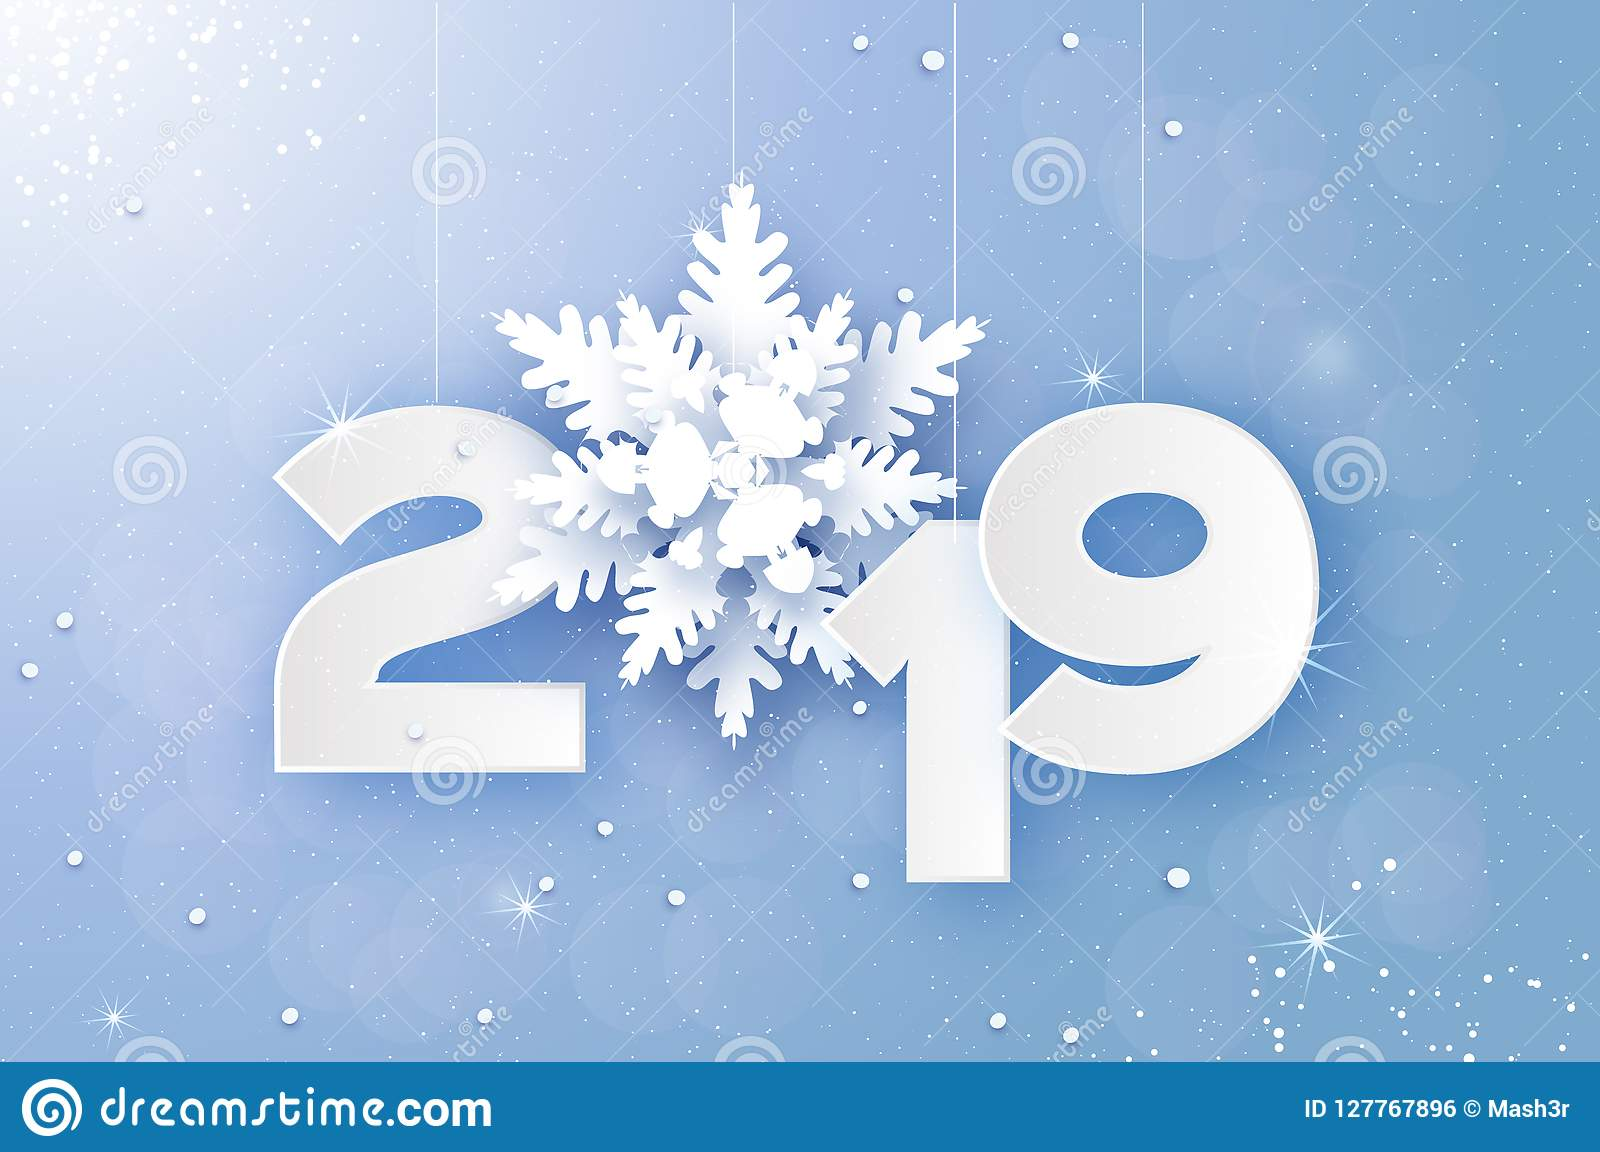 2019 merry christmas and happy new year greetings card white paper cut snowflakes